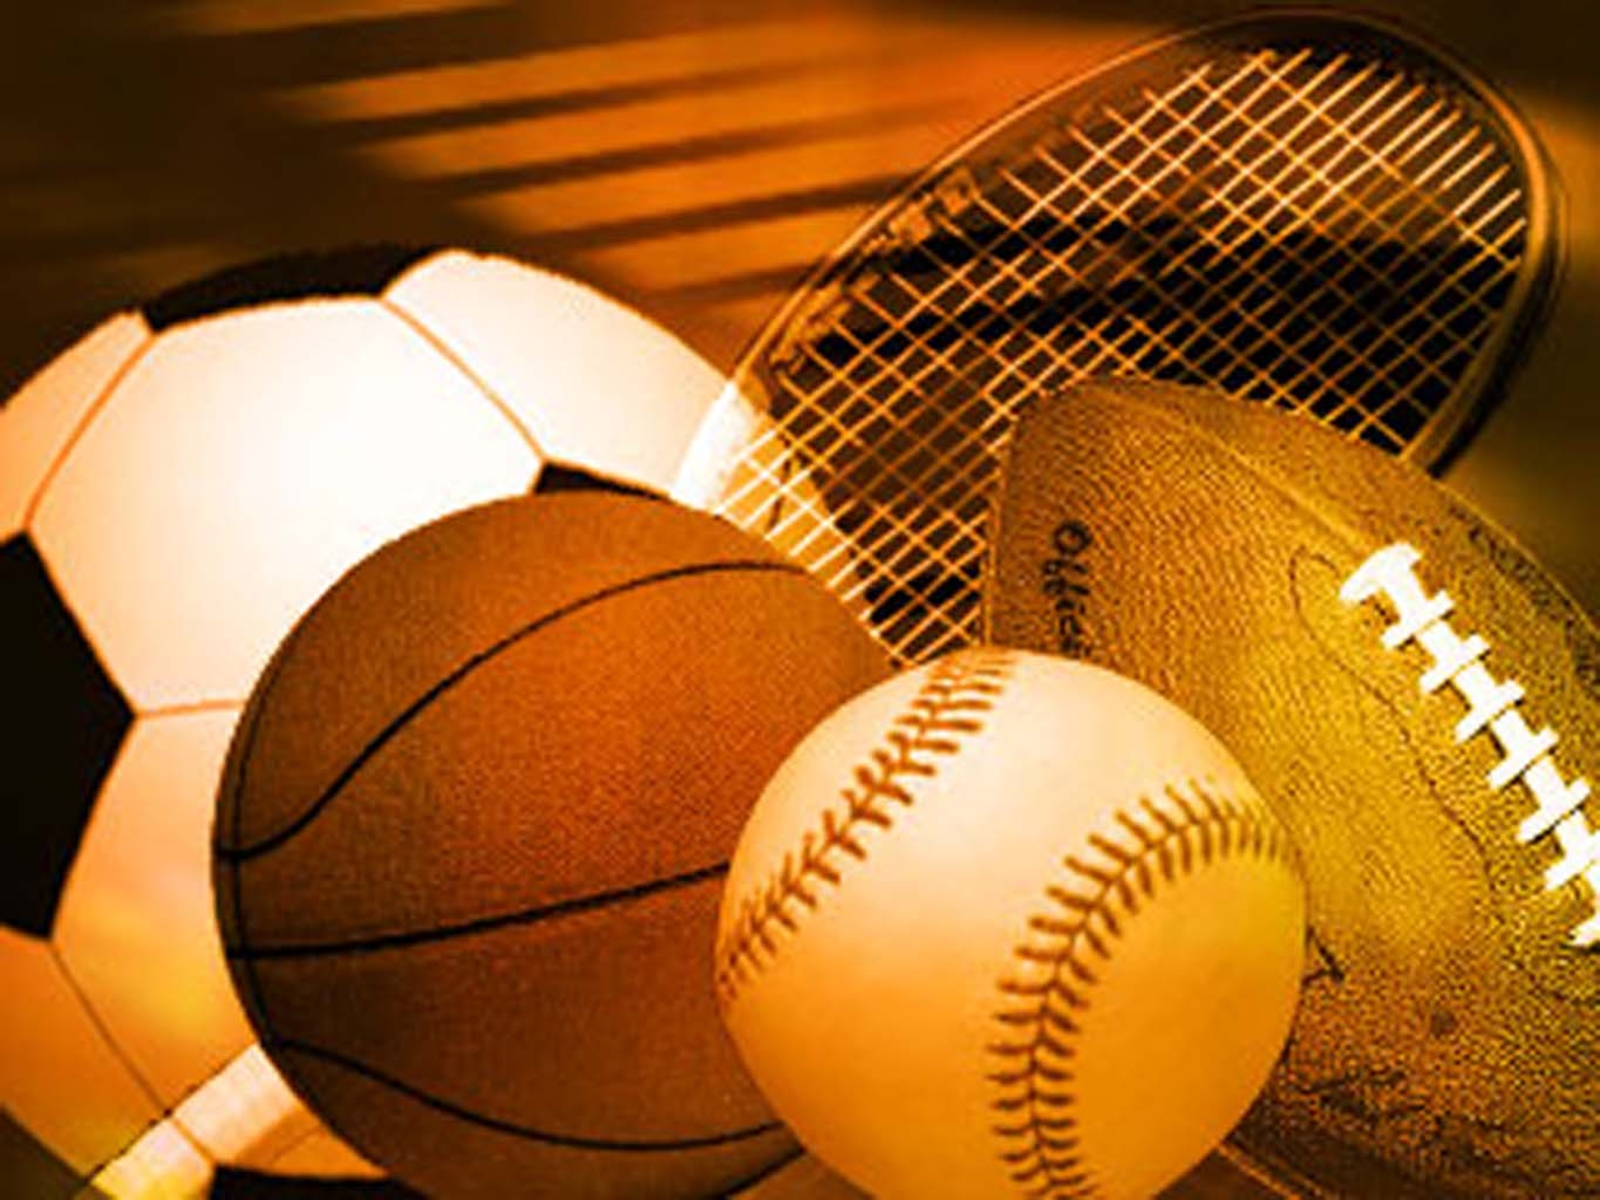 Sports Ball Desktop Background